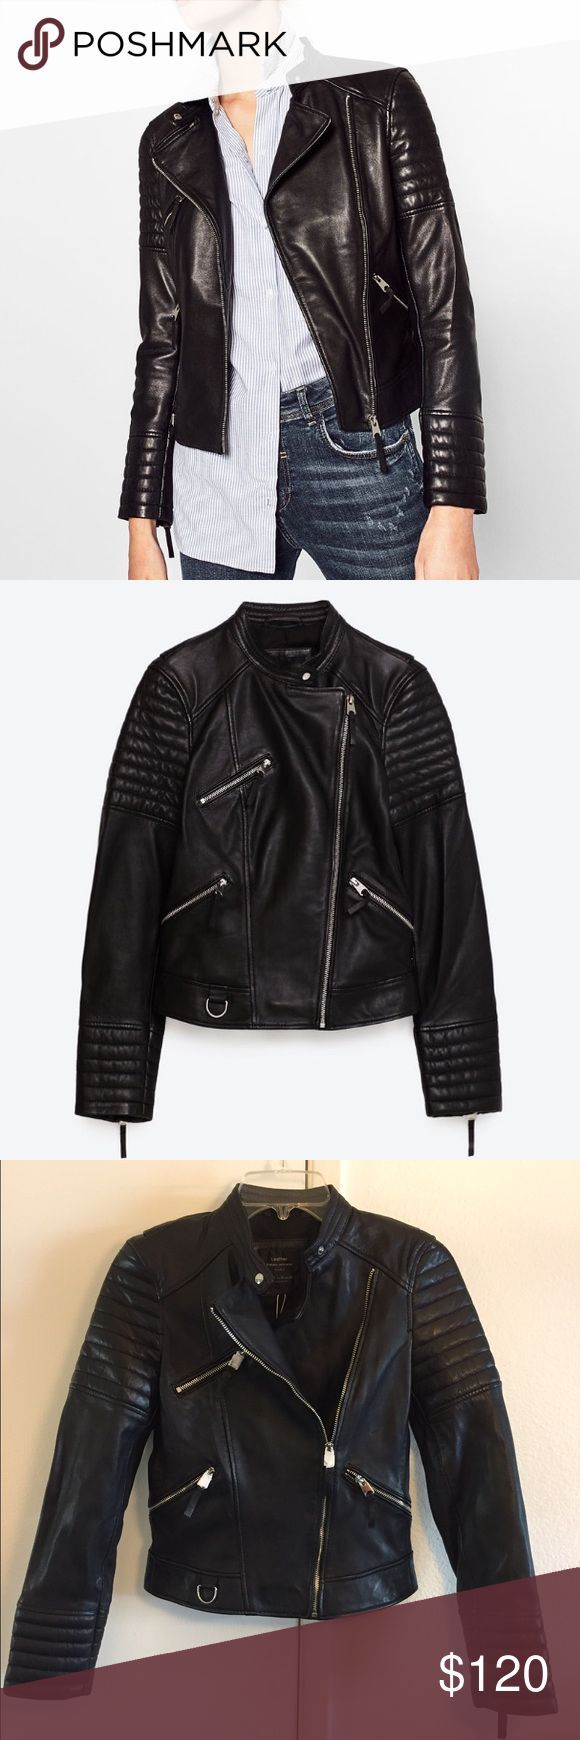 Zara TRF Collection Real Leather Jacket TRF Real Leather Jacket With Zips Zara Jackets & Coats